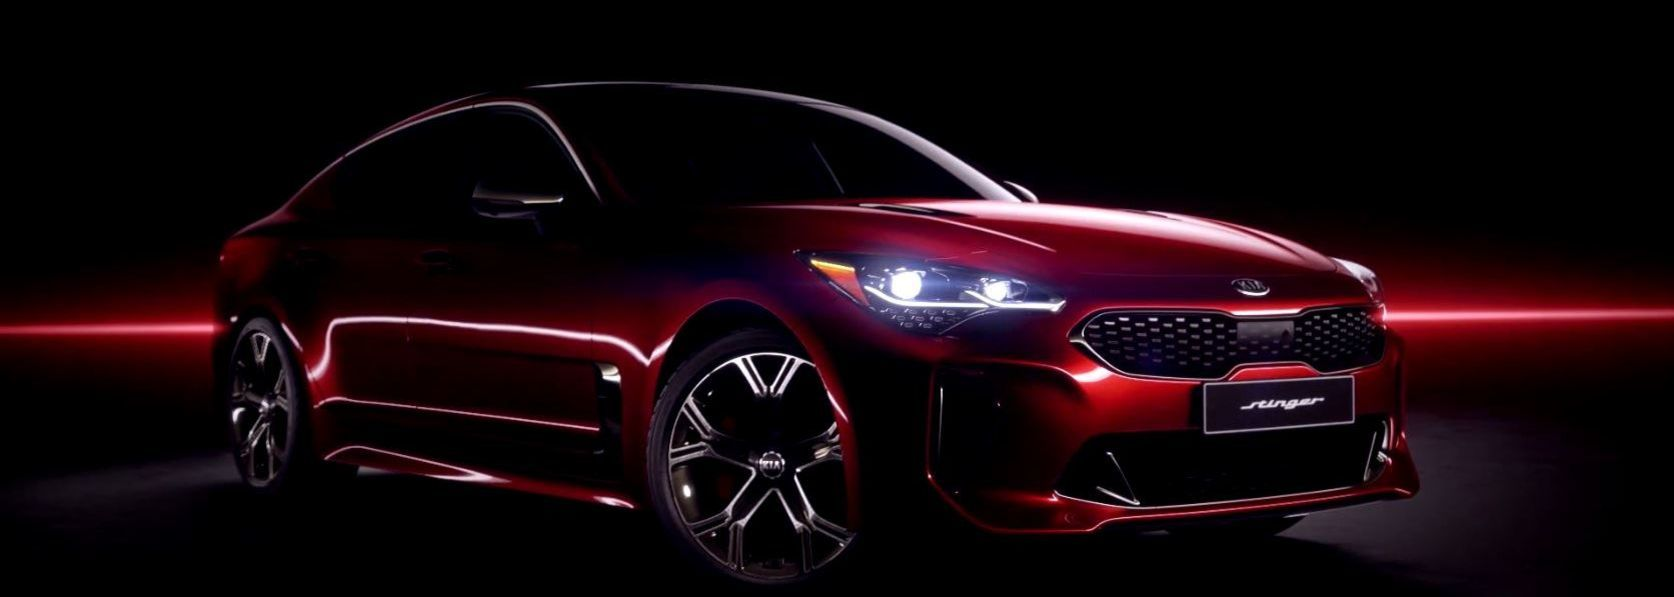 2019 Kia Stinger for Sale near Stillwater, OK